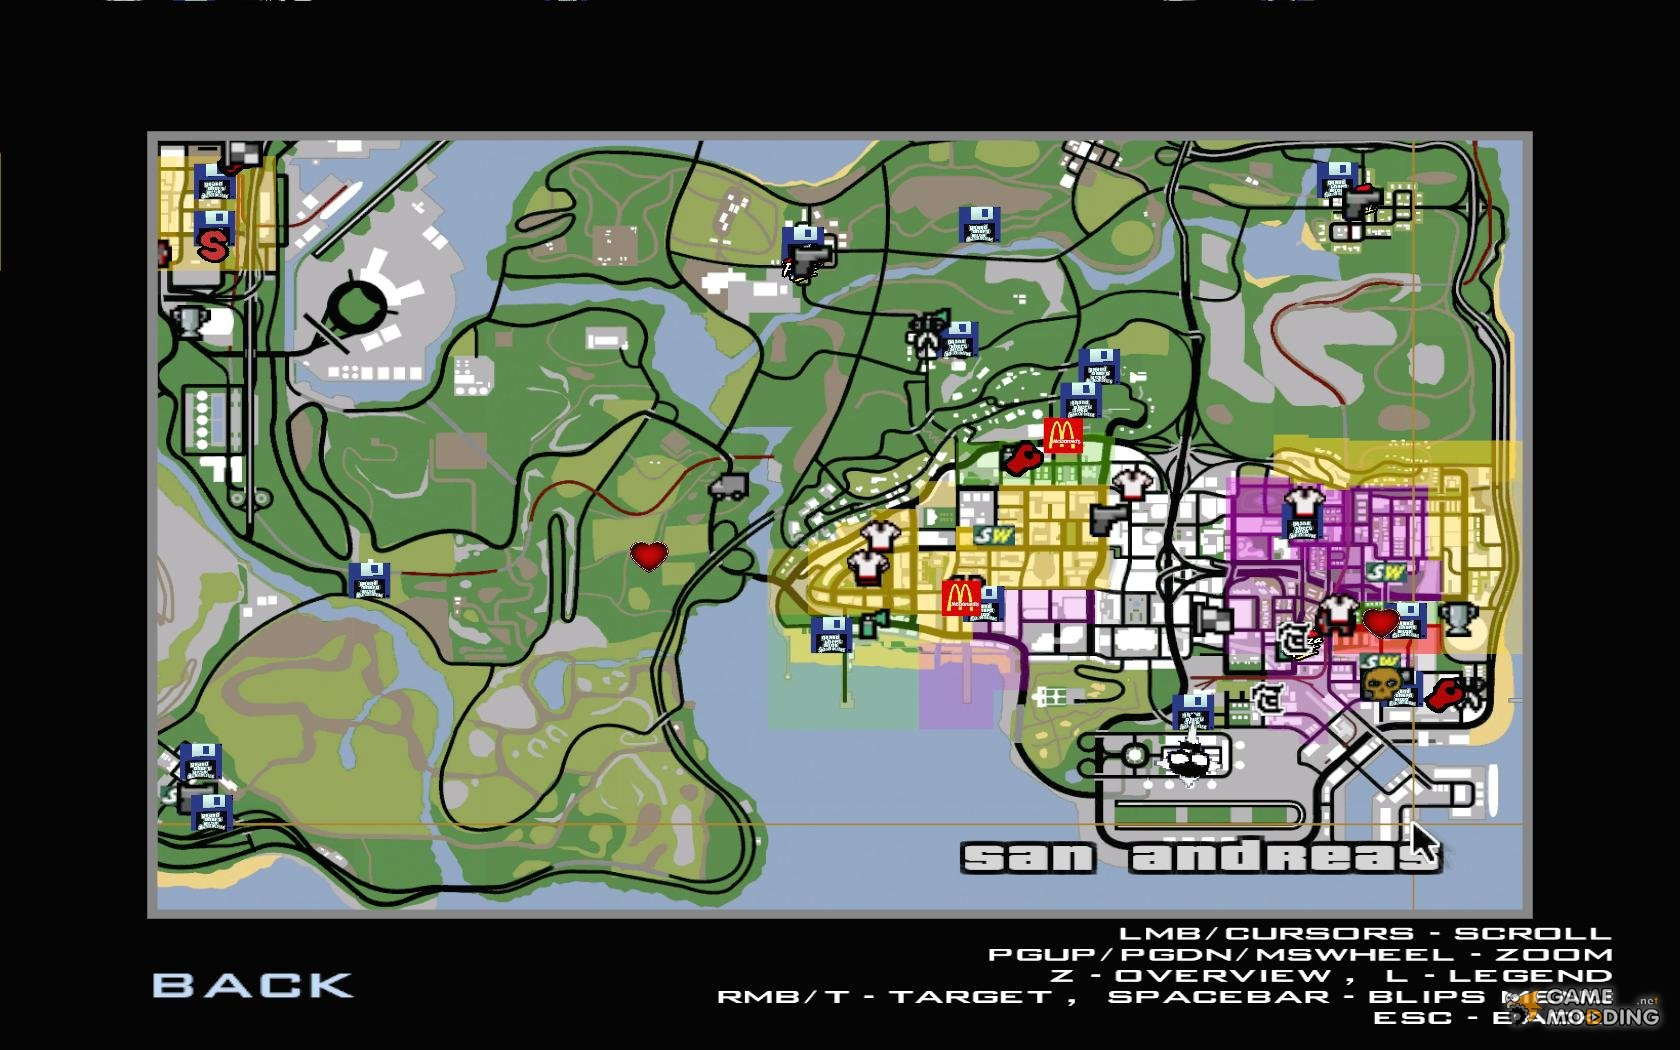 where to find helicopters in gta 5 with 14314 Modern Savehouse Interior on 4270 Submarina likewise 1100 6424617 in addition Gta 5 Cheats All Of The Cheats On Xbox 360 moreover 27540 Pigeons also Watch.